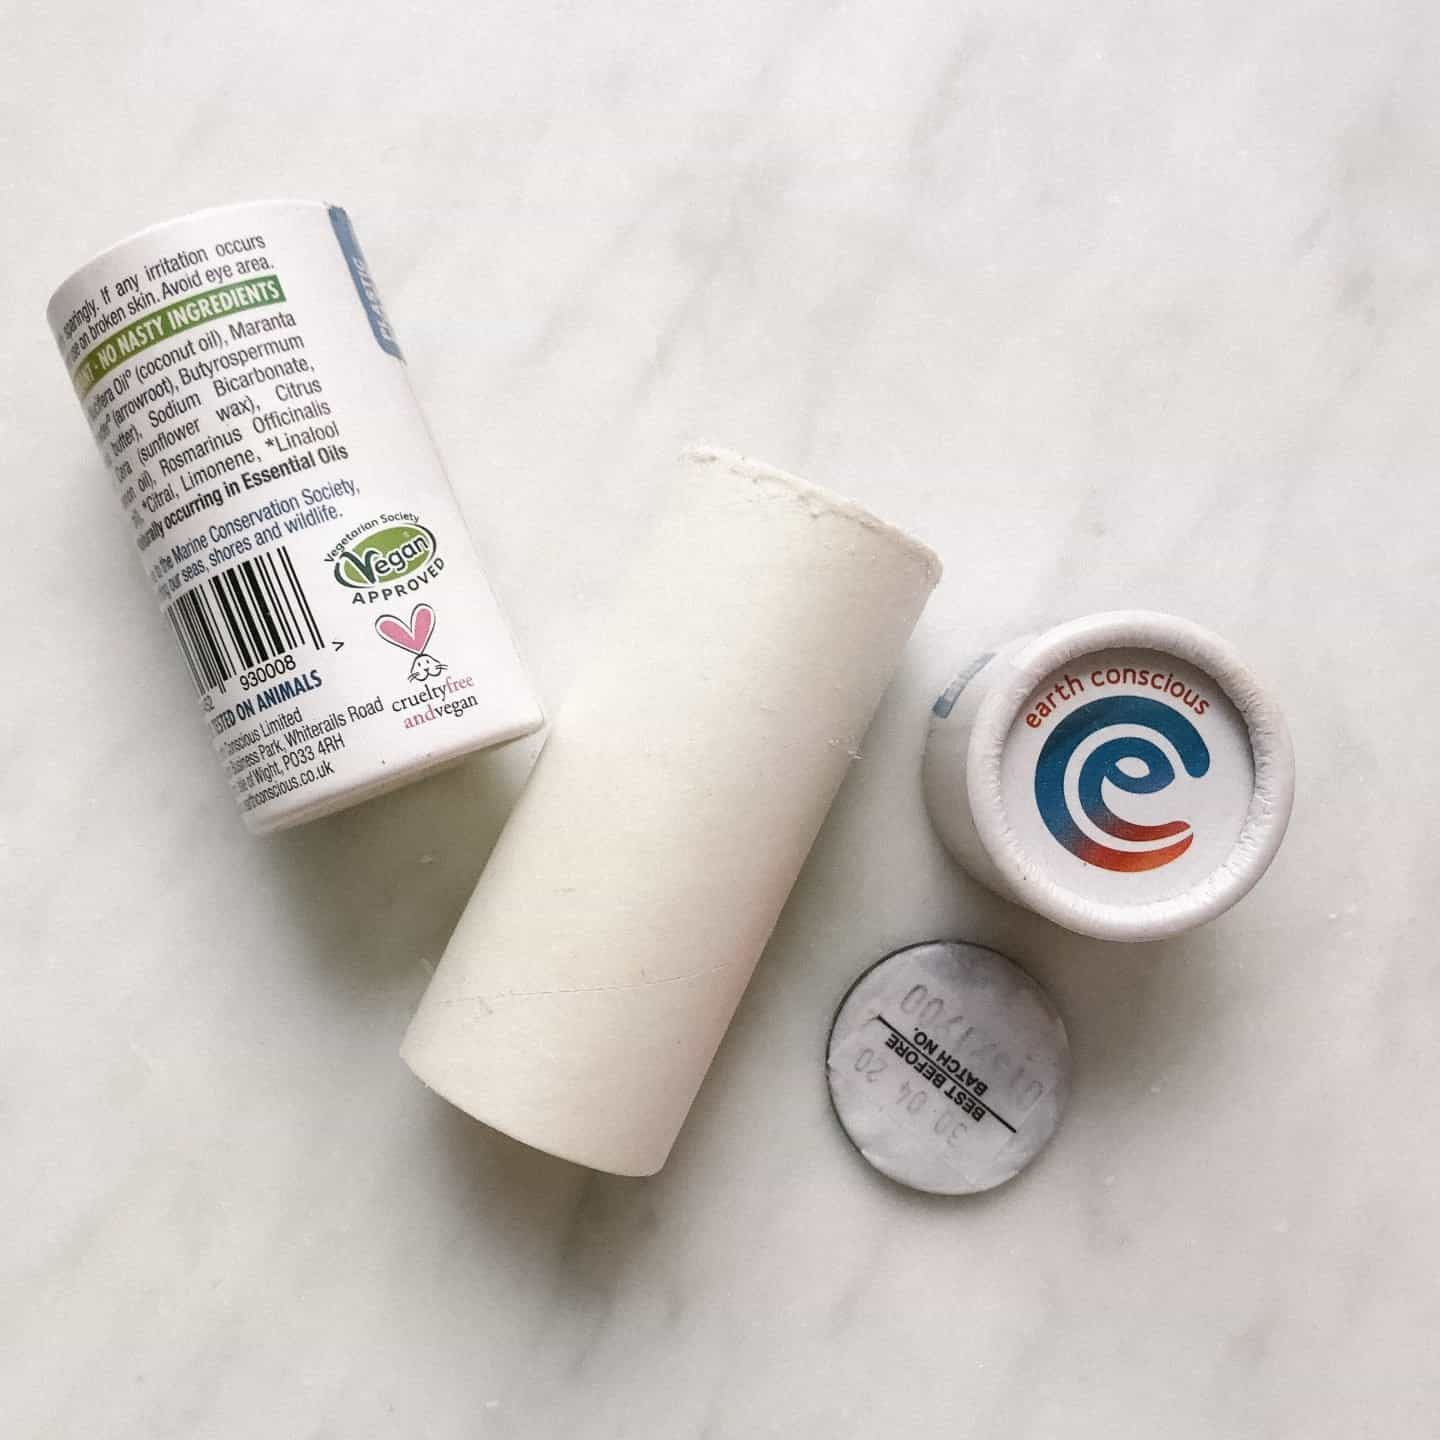 Earth Conscious No Nasties zero waste deodorant zero waste cardboard packaging